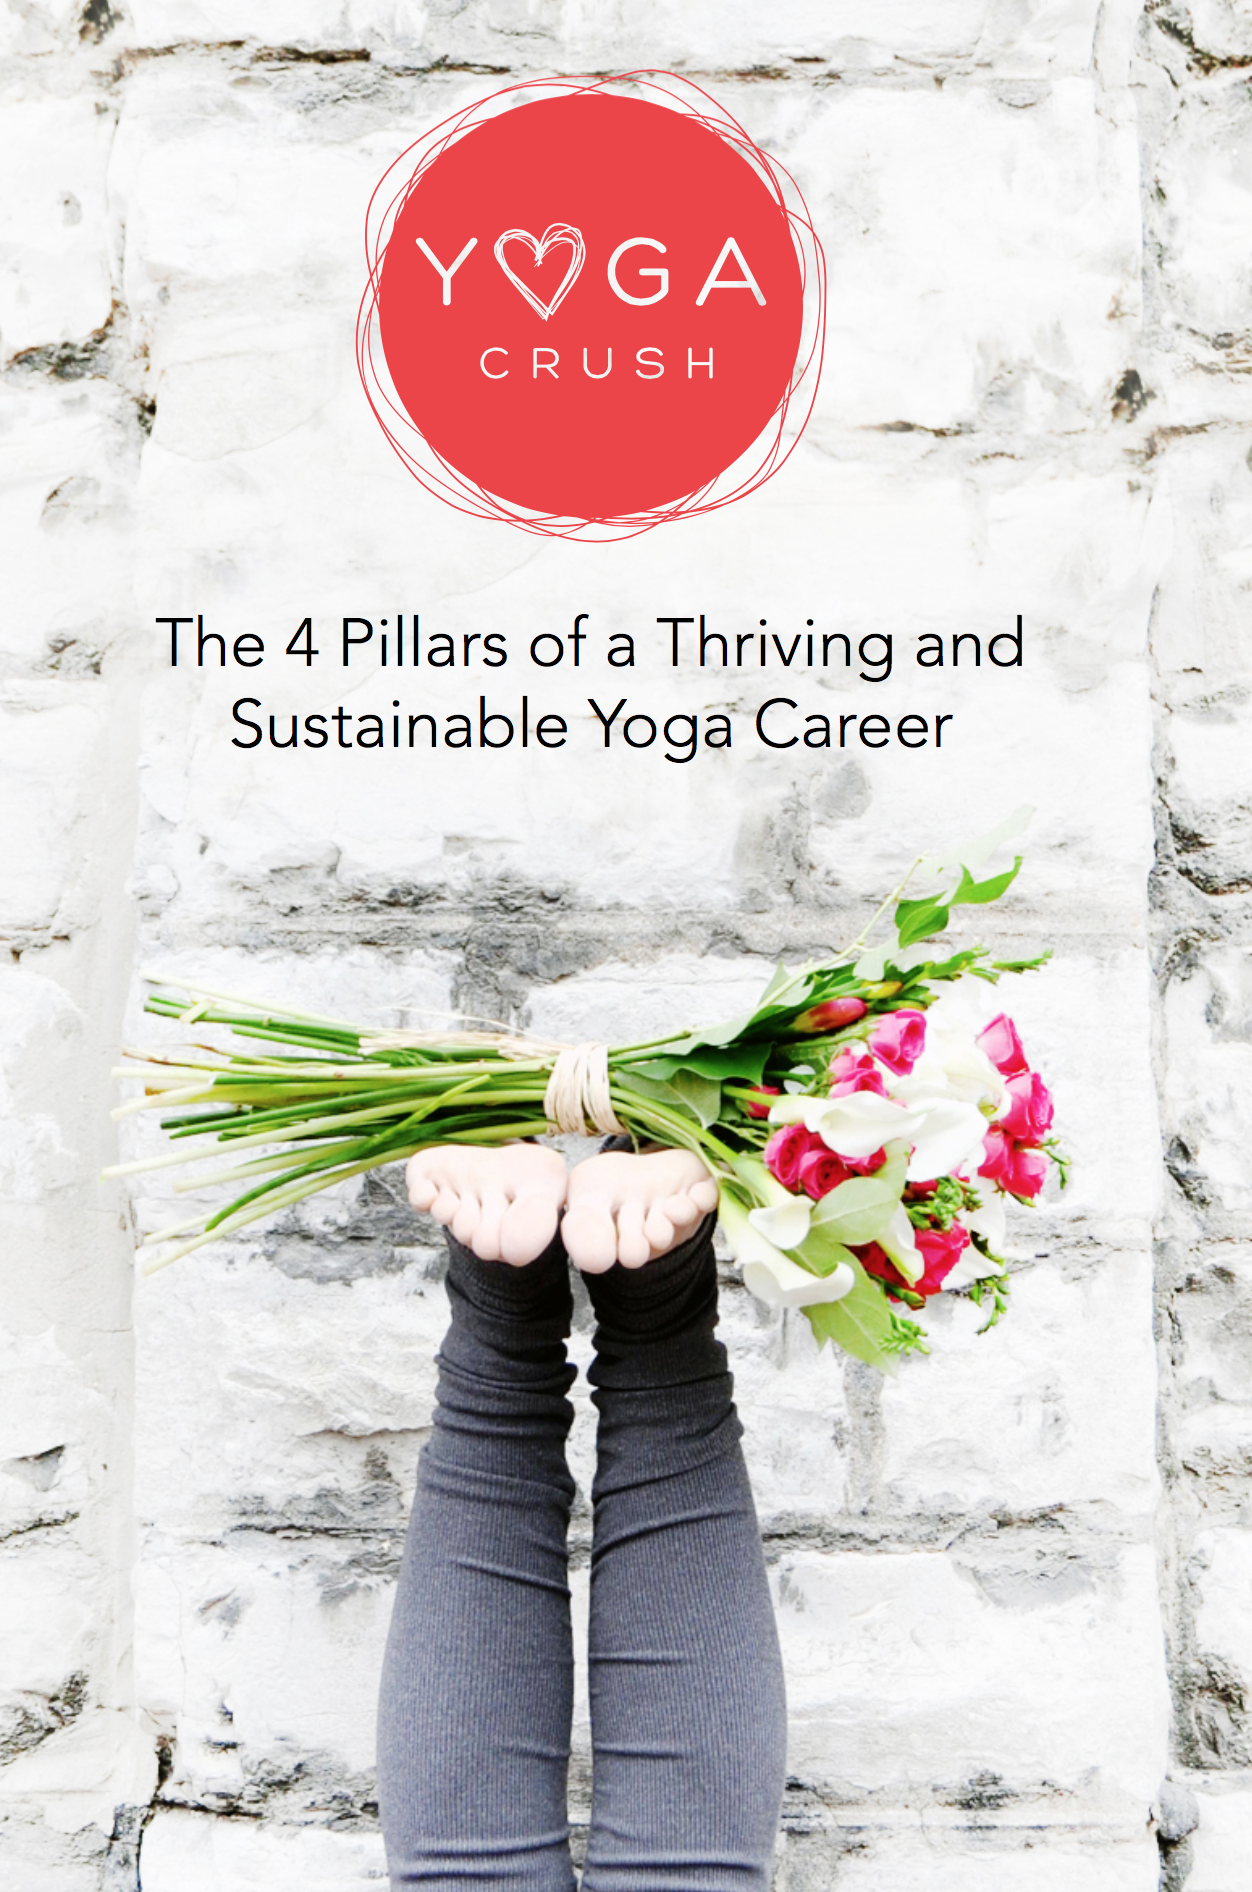 Yoga Crush is not an Active Podcast anymore, but I do believe you can still listen to it on your Apple Store for FREE! Absolute great ressource for Yoga Teachers.